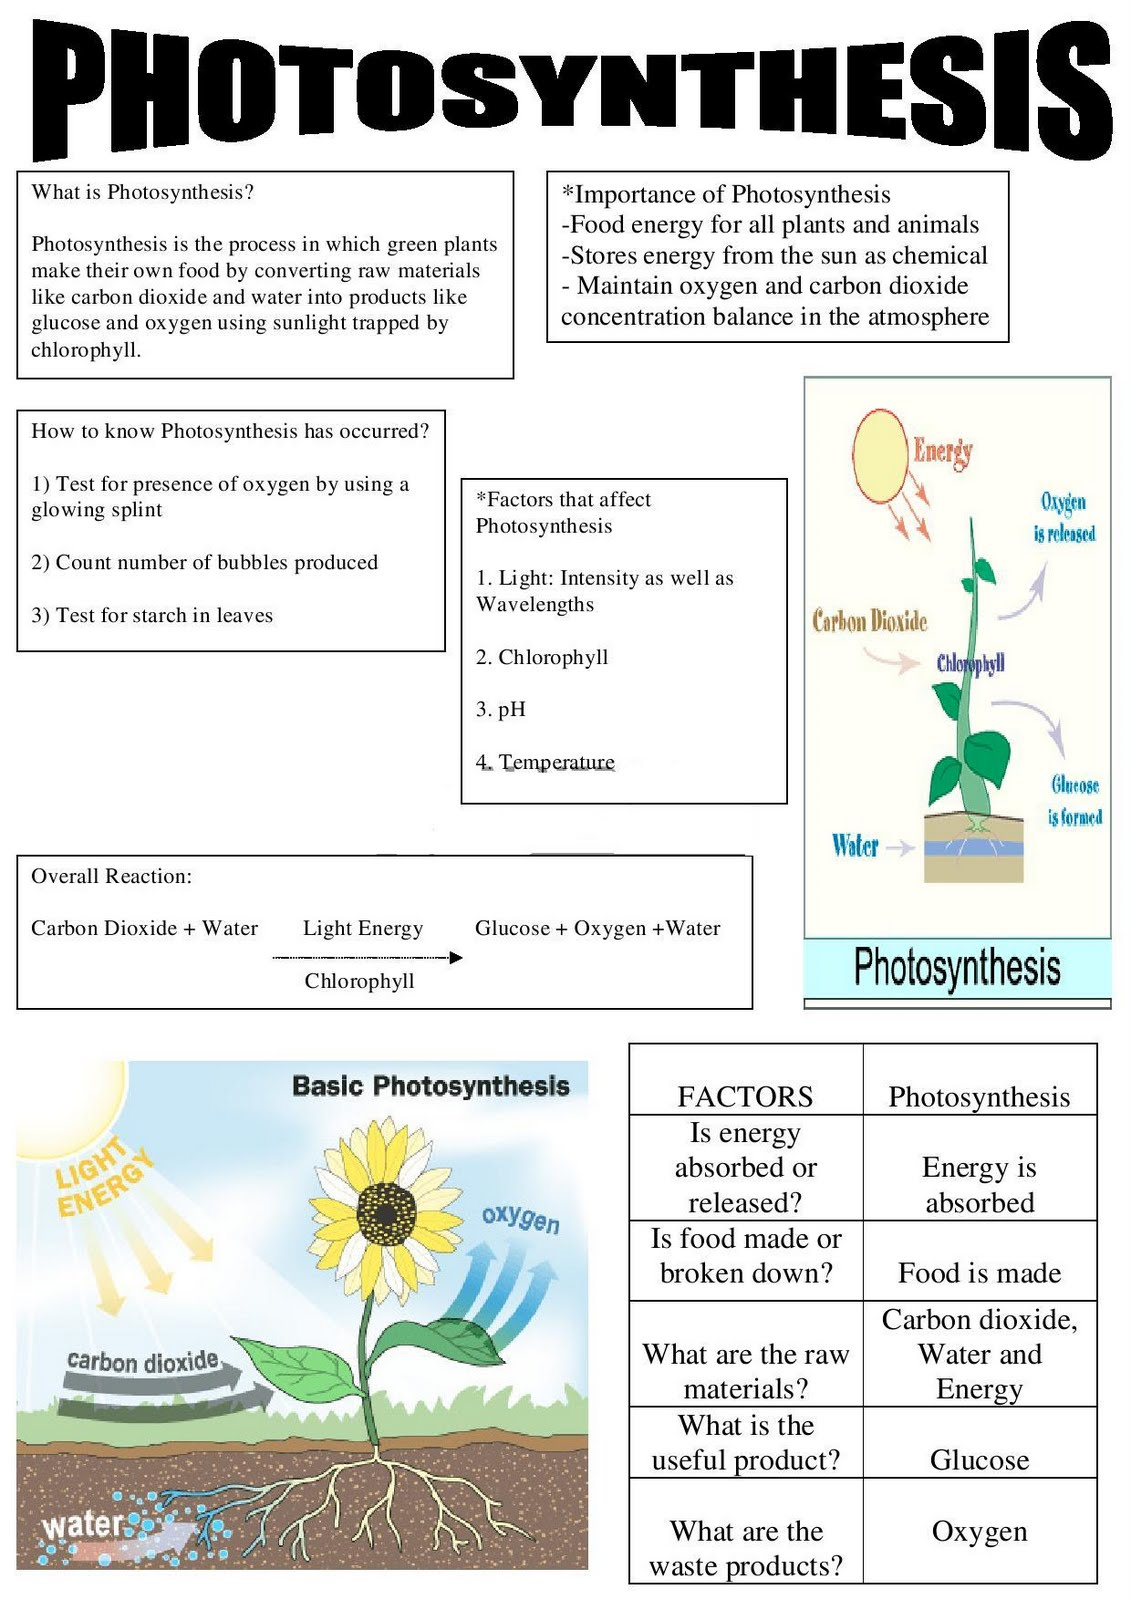 What Role Does Water Play in Photosynthesis?